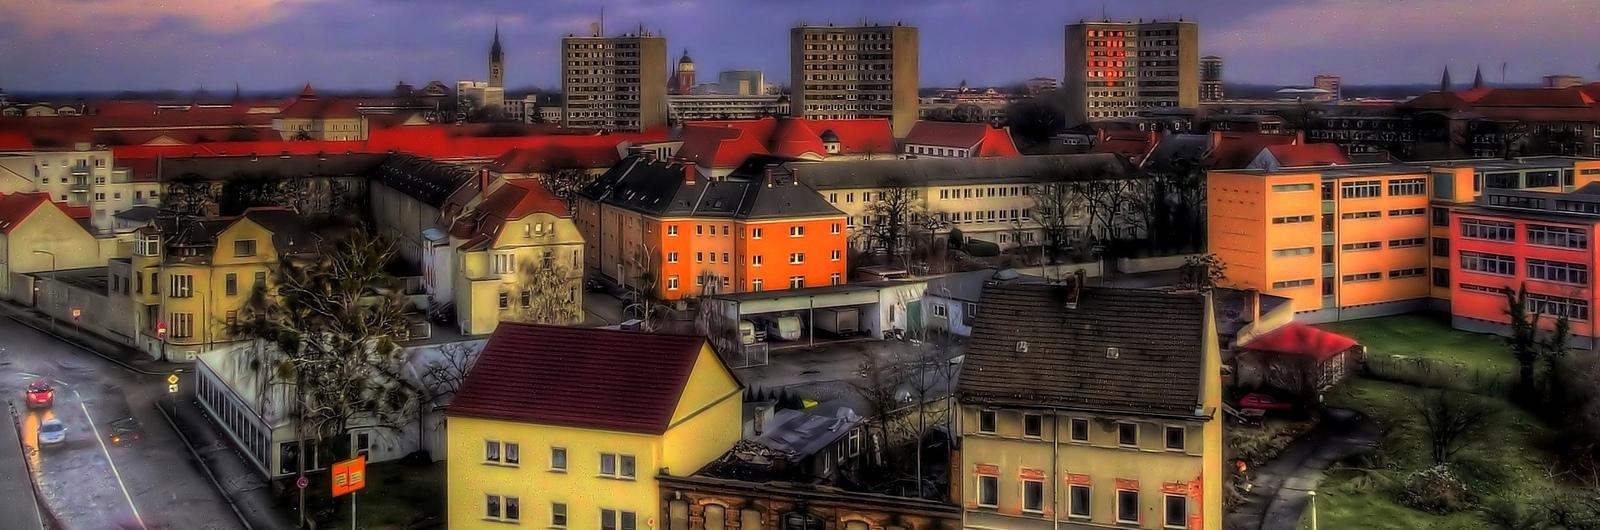 dessau city header